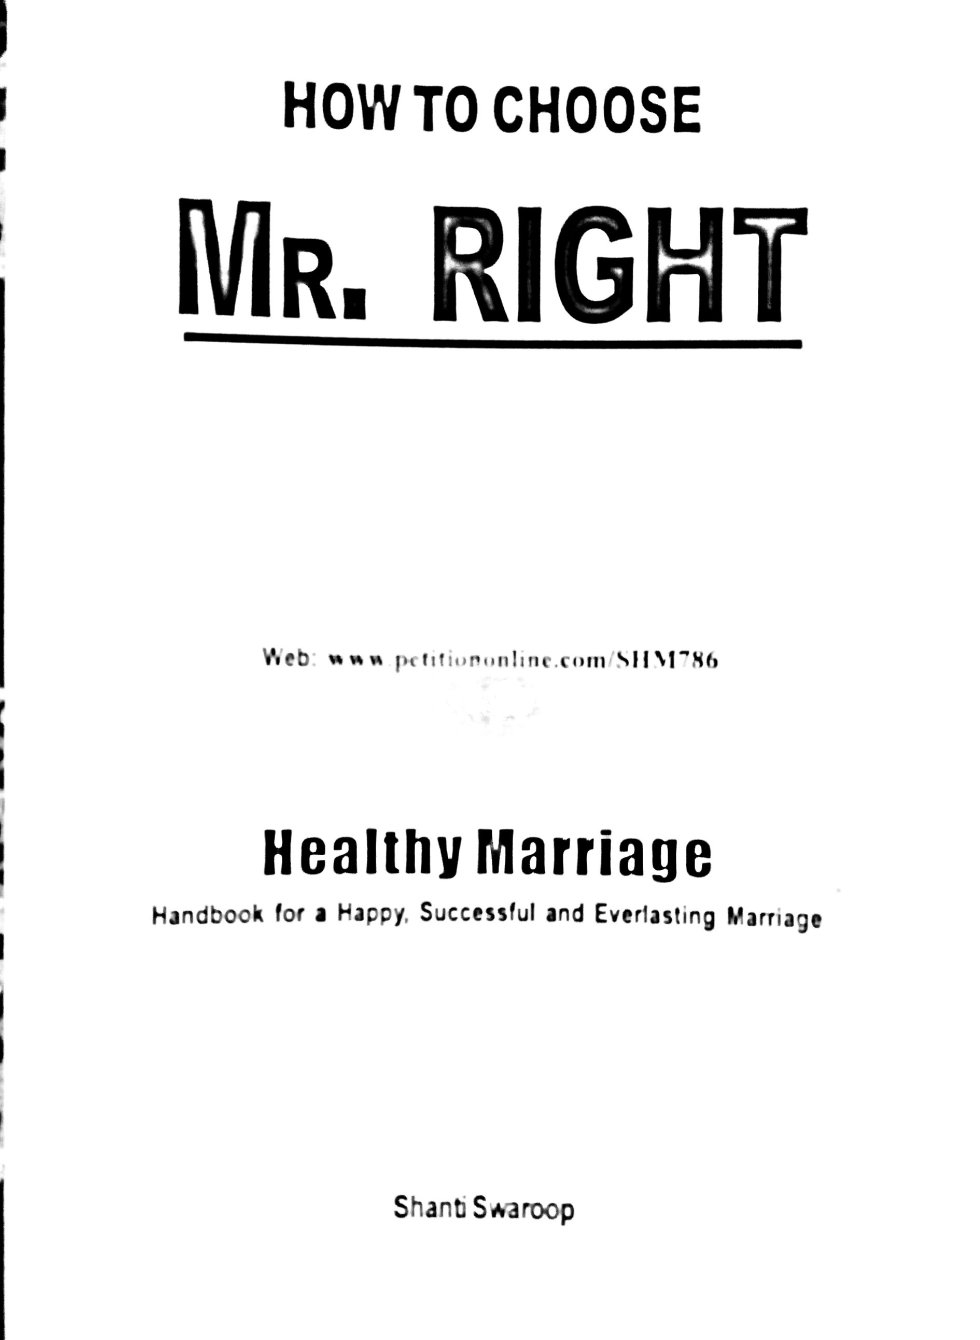 How to choose Mr. Right